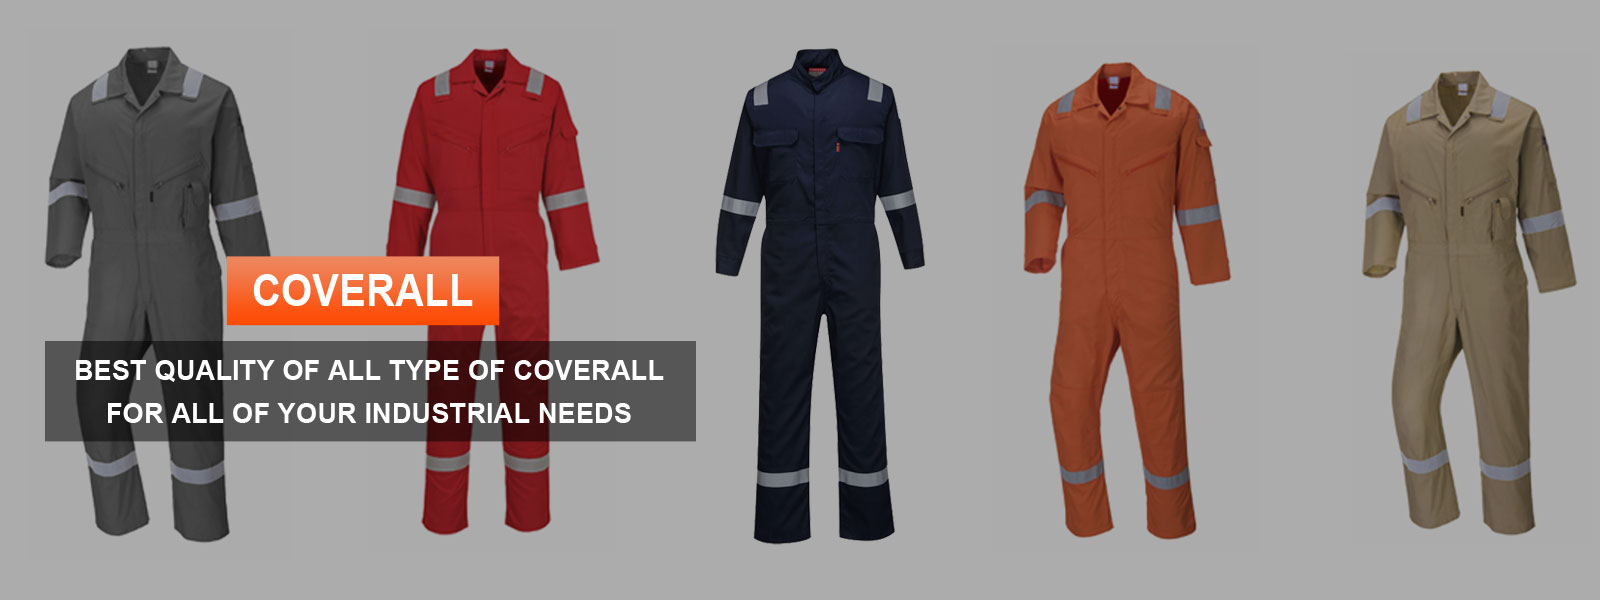 Coverall Manufacturers in Hyderabad